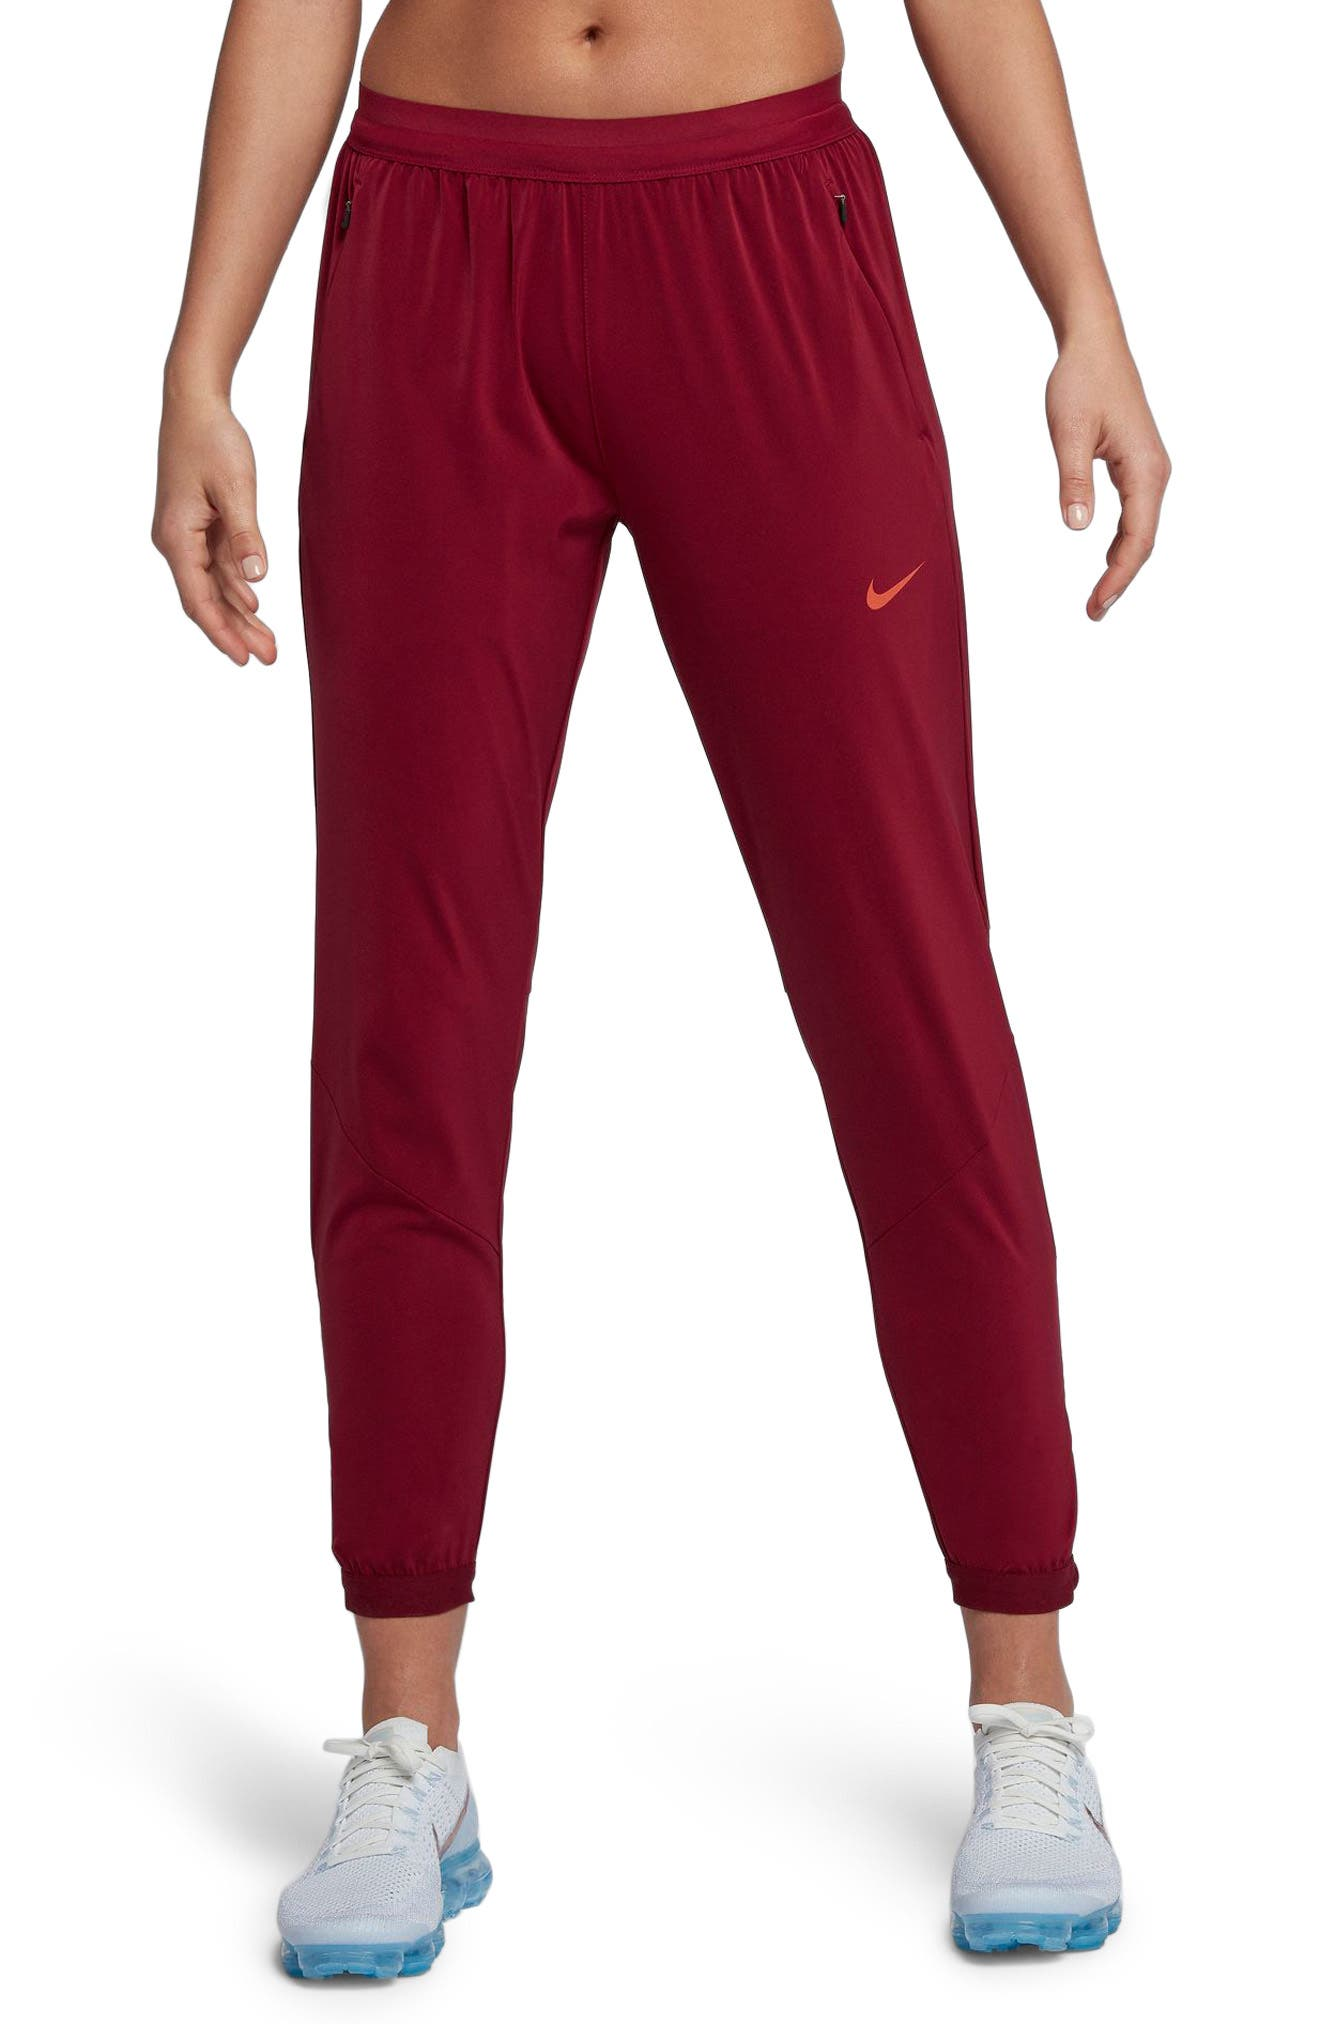 Women's Dry Running Stadium Pants,                             Main thumbnail 1, color,                             Team Red/ Vintage Coral